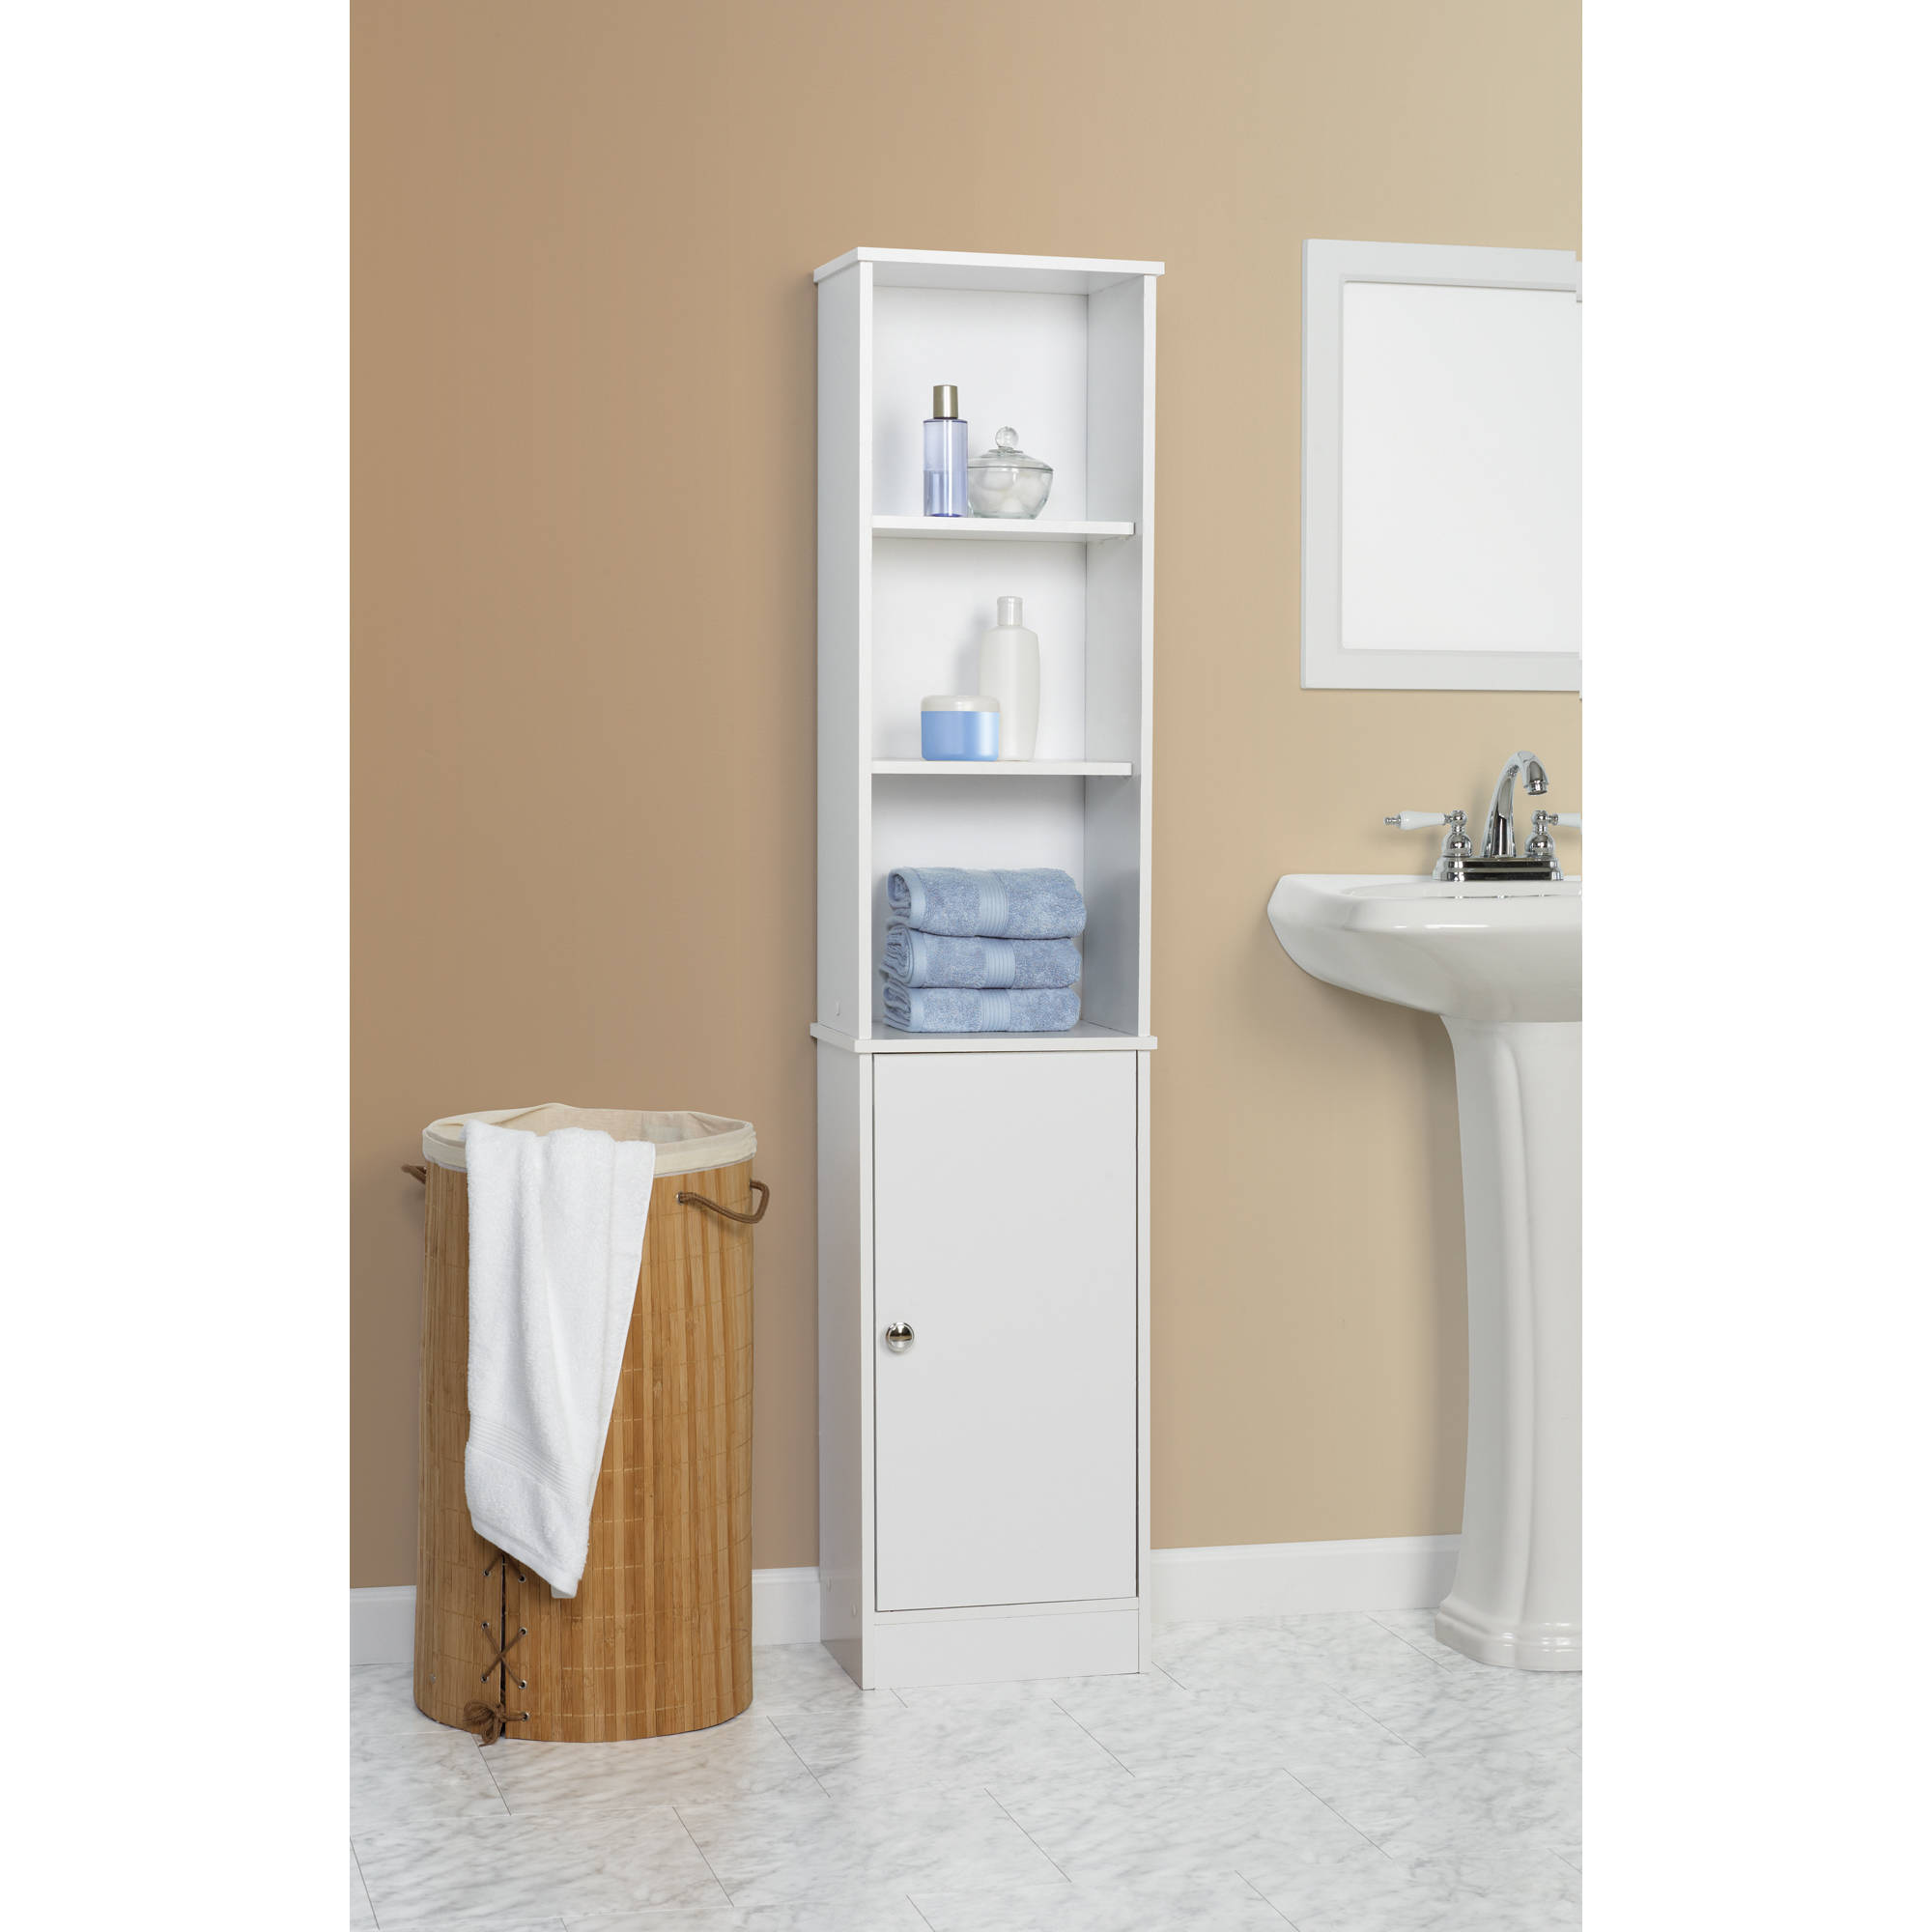 White Bathroom Furniture Storage Cupboard Cabinet Shelves: Wooden Tall Storage Cabinet Bathroom White Linen Tower